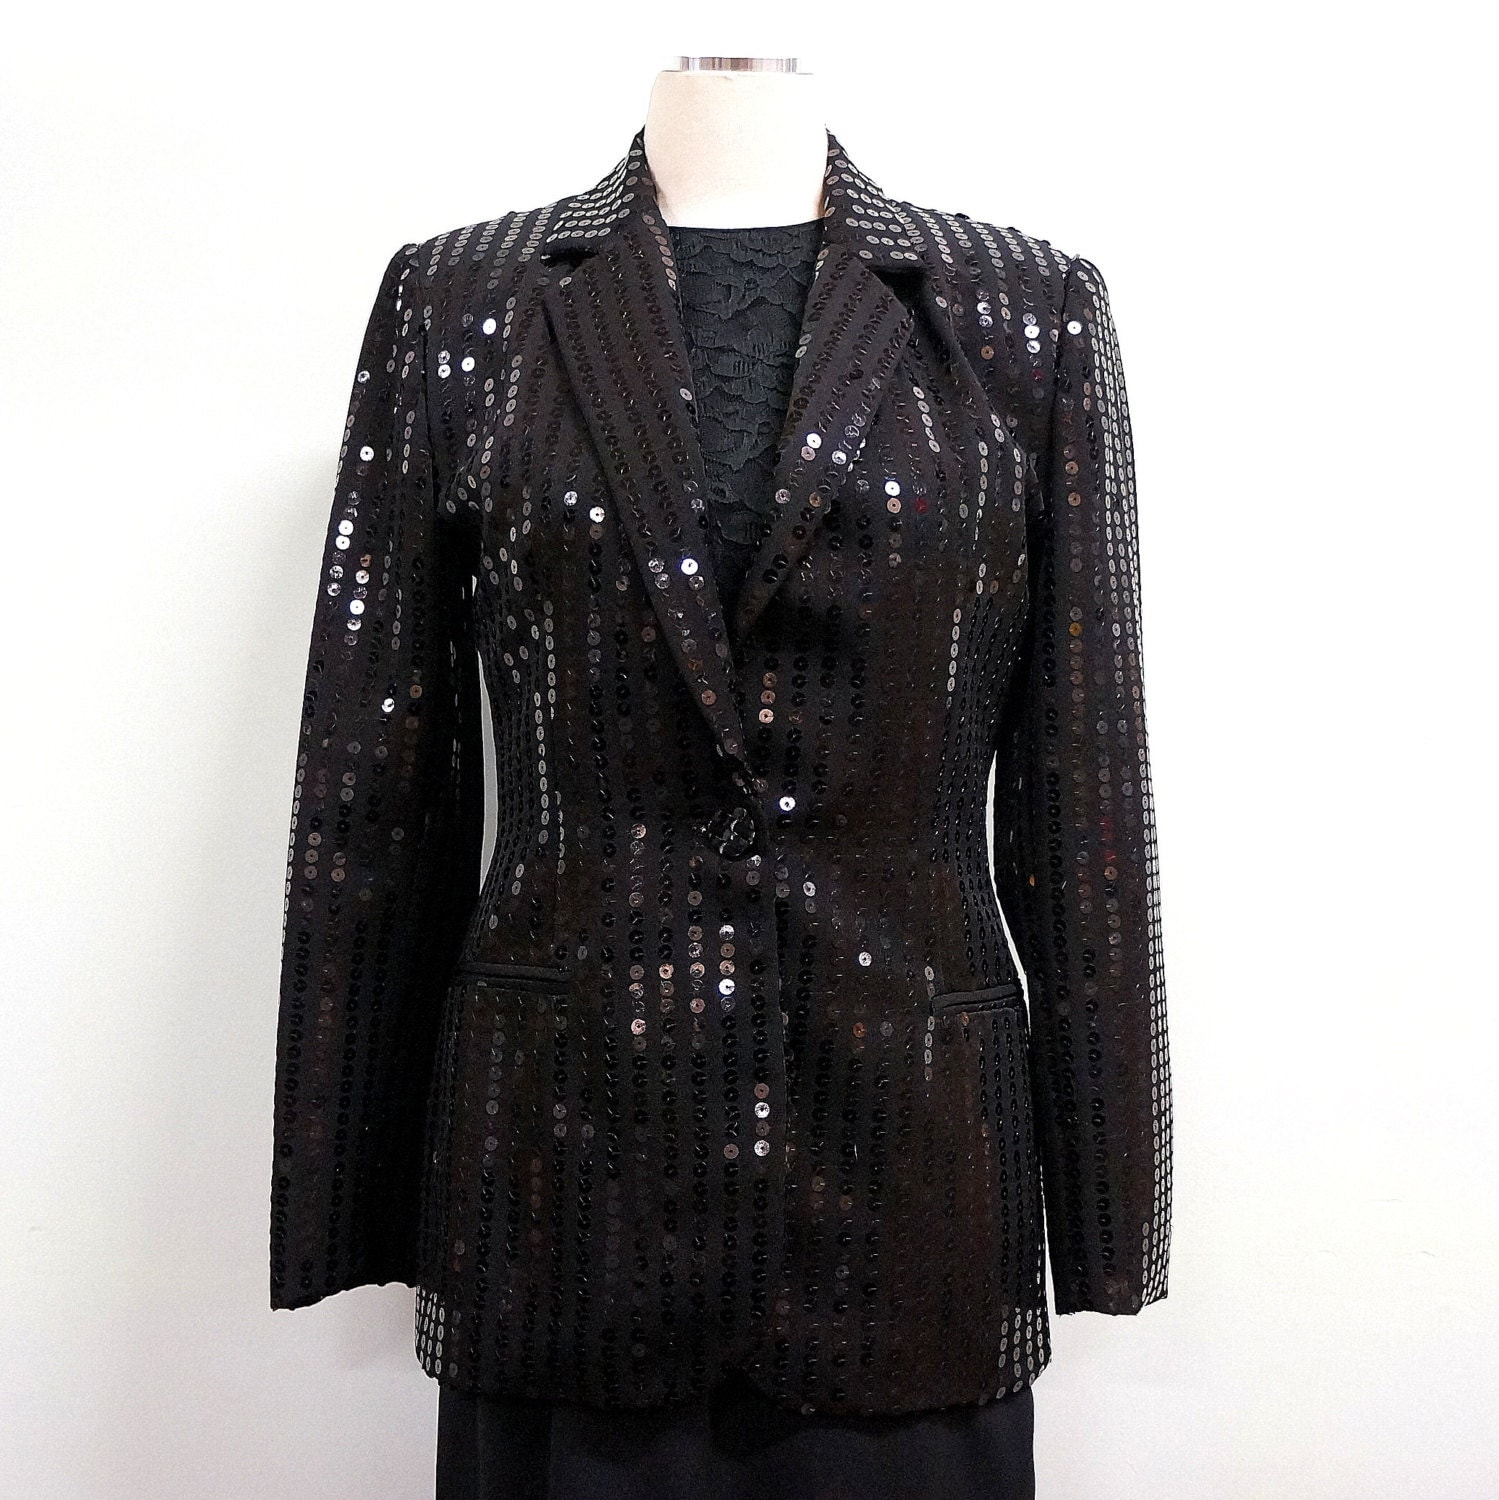 ASOS Sequin Jacket ASOS pink and black sequinned jacket with senonsdownload-gv.cf fastenings,but you could pin a brooch there if you prefer to.3/4 sleeves. #asos #sequin #party #Christmas #glamour #jacket #16 #14 #eveningwear #festival #clubbing #pink #black.